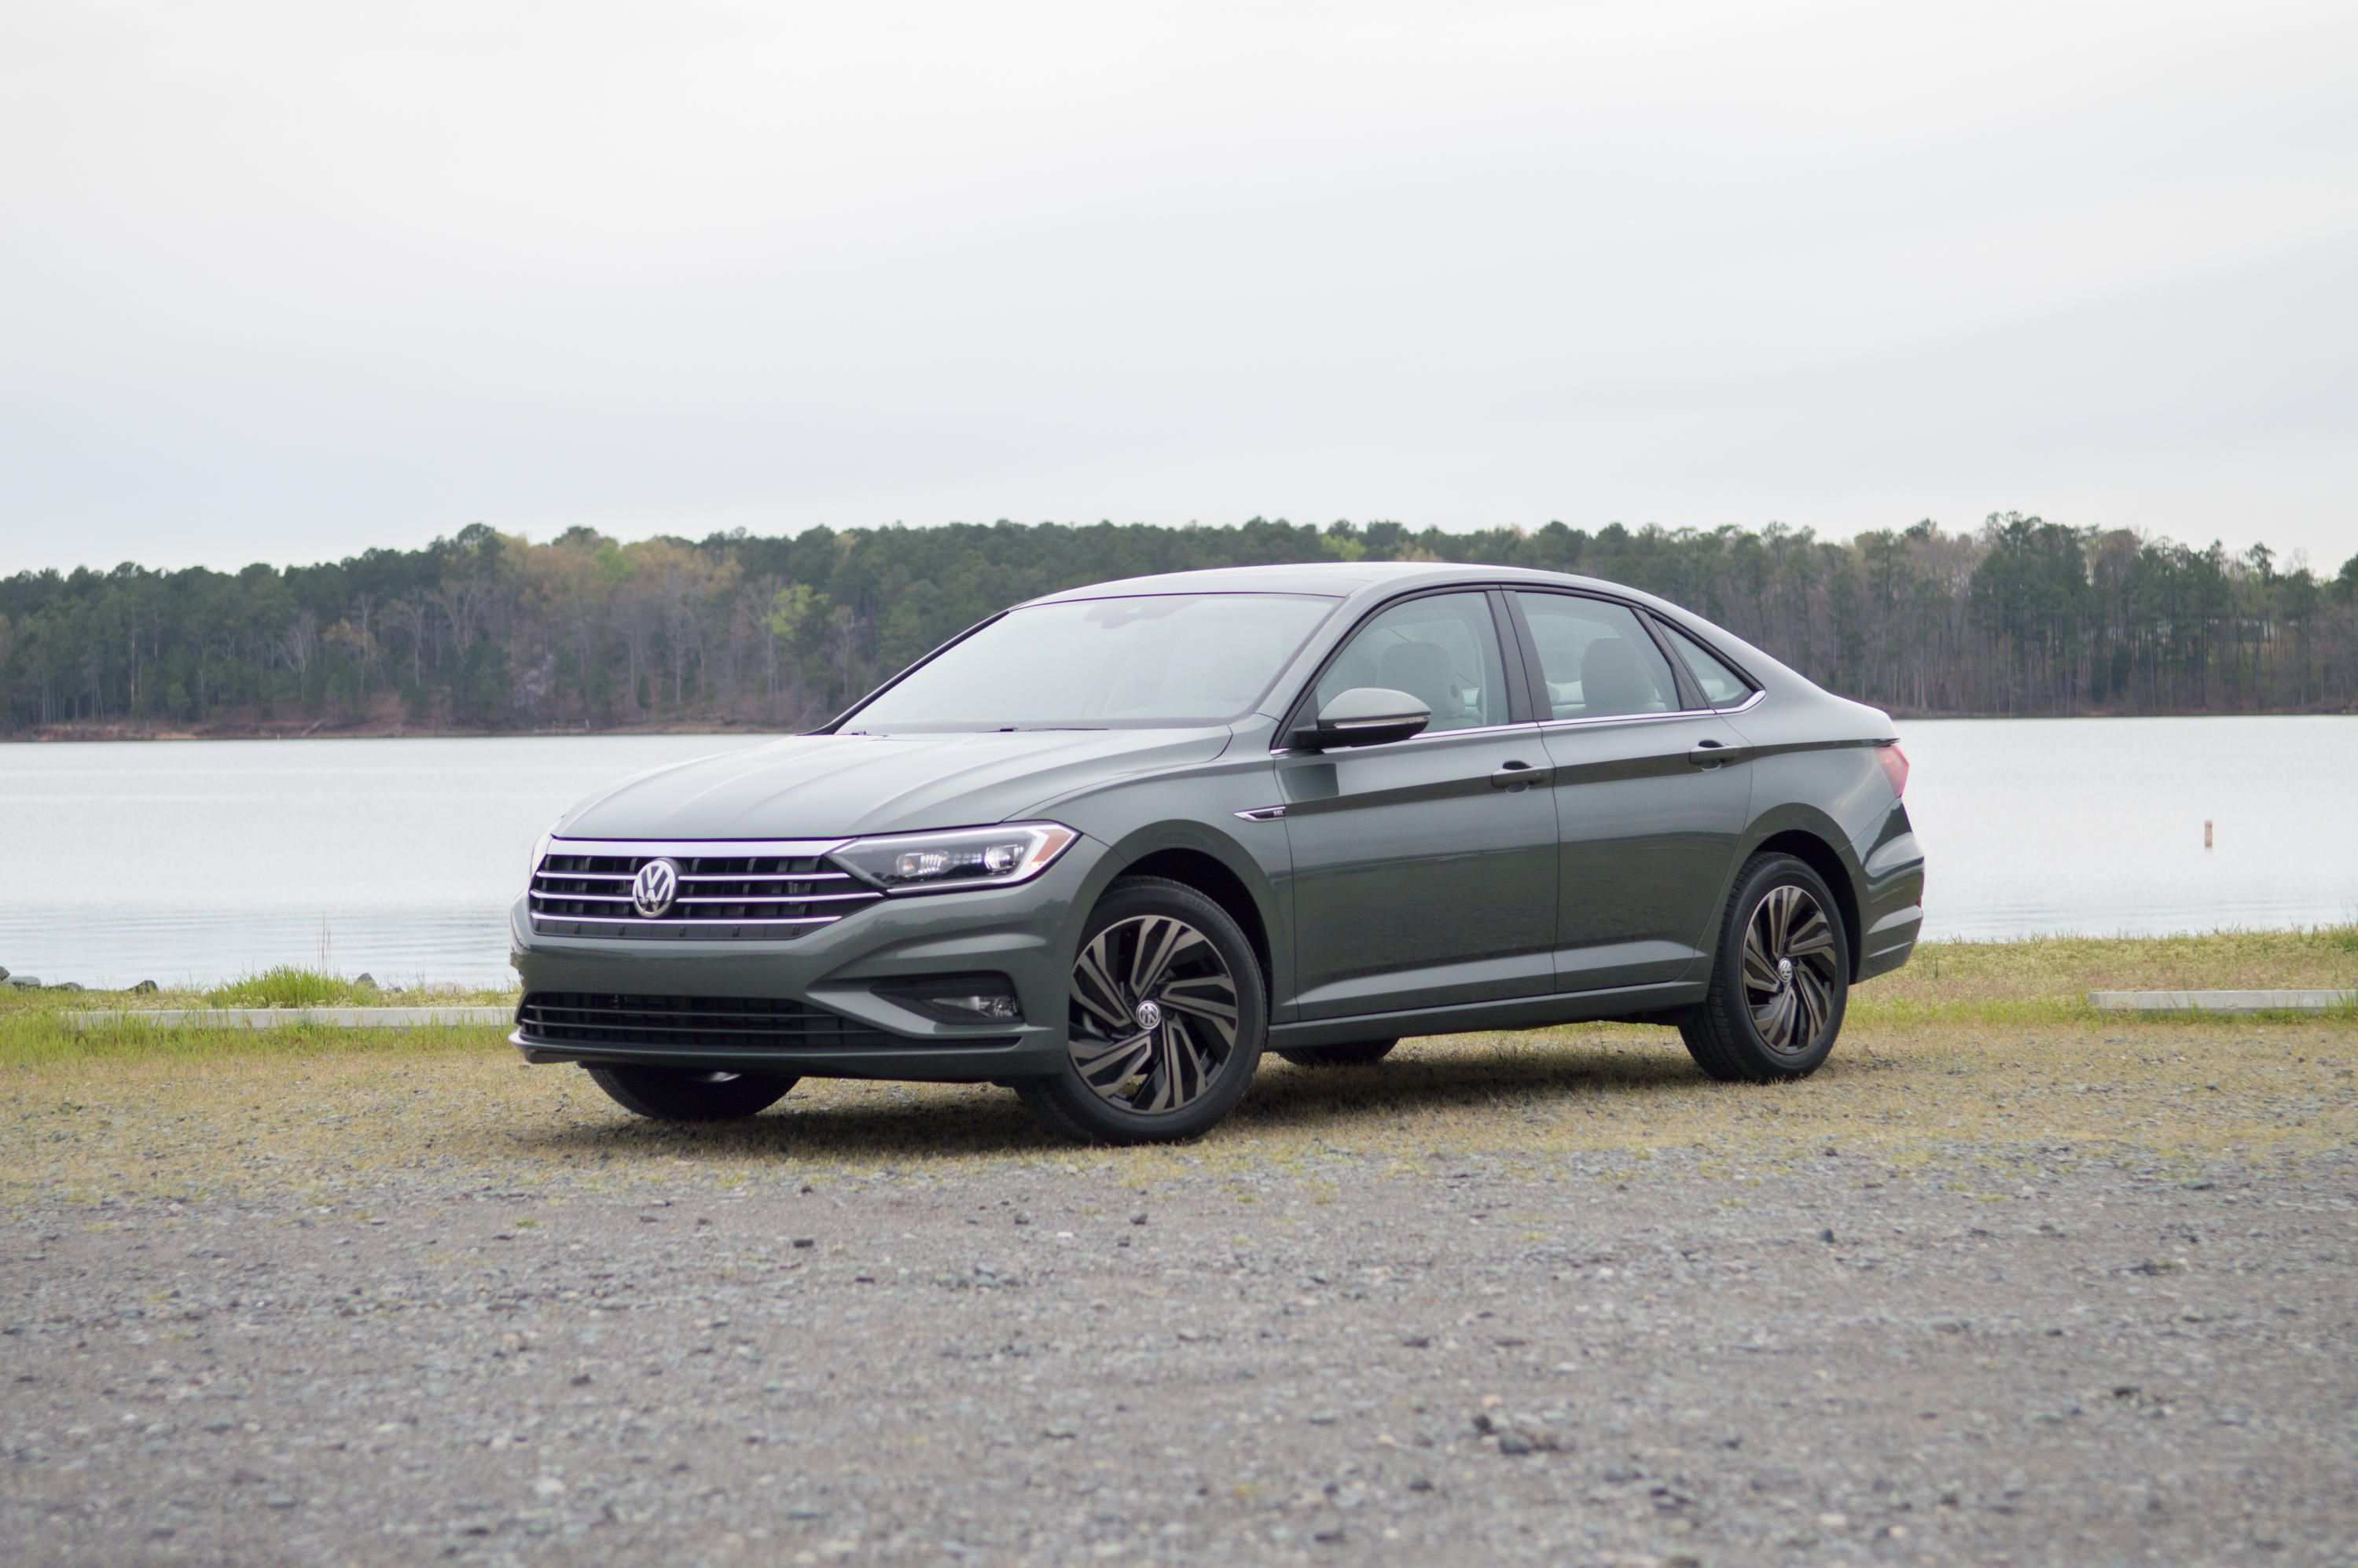 37 Gallery of 2019 Vw Jetta Tdi Engine with 2019 Vw Jetta Tdi